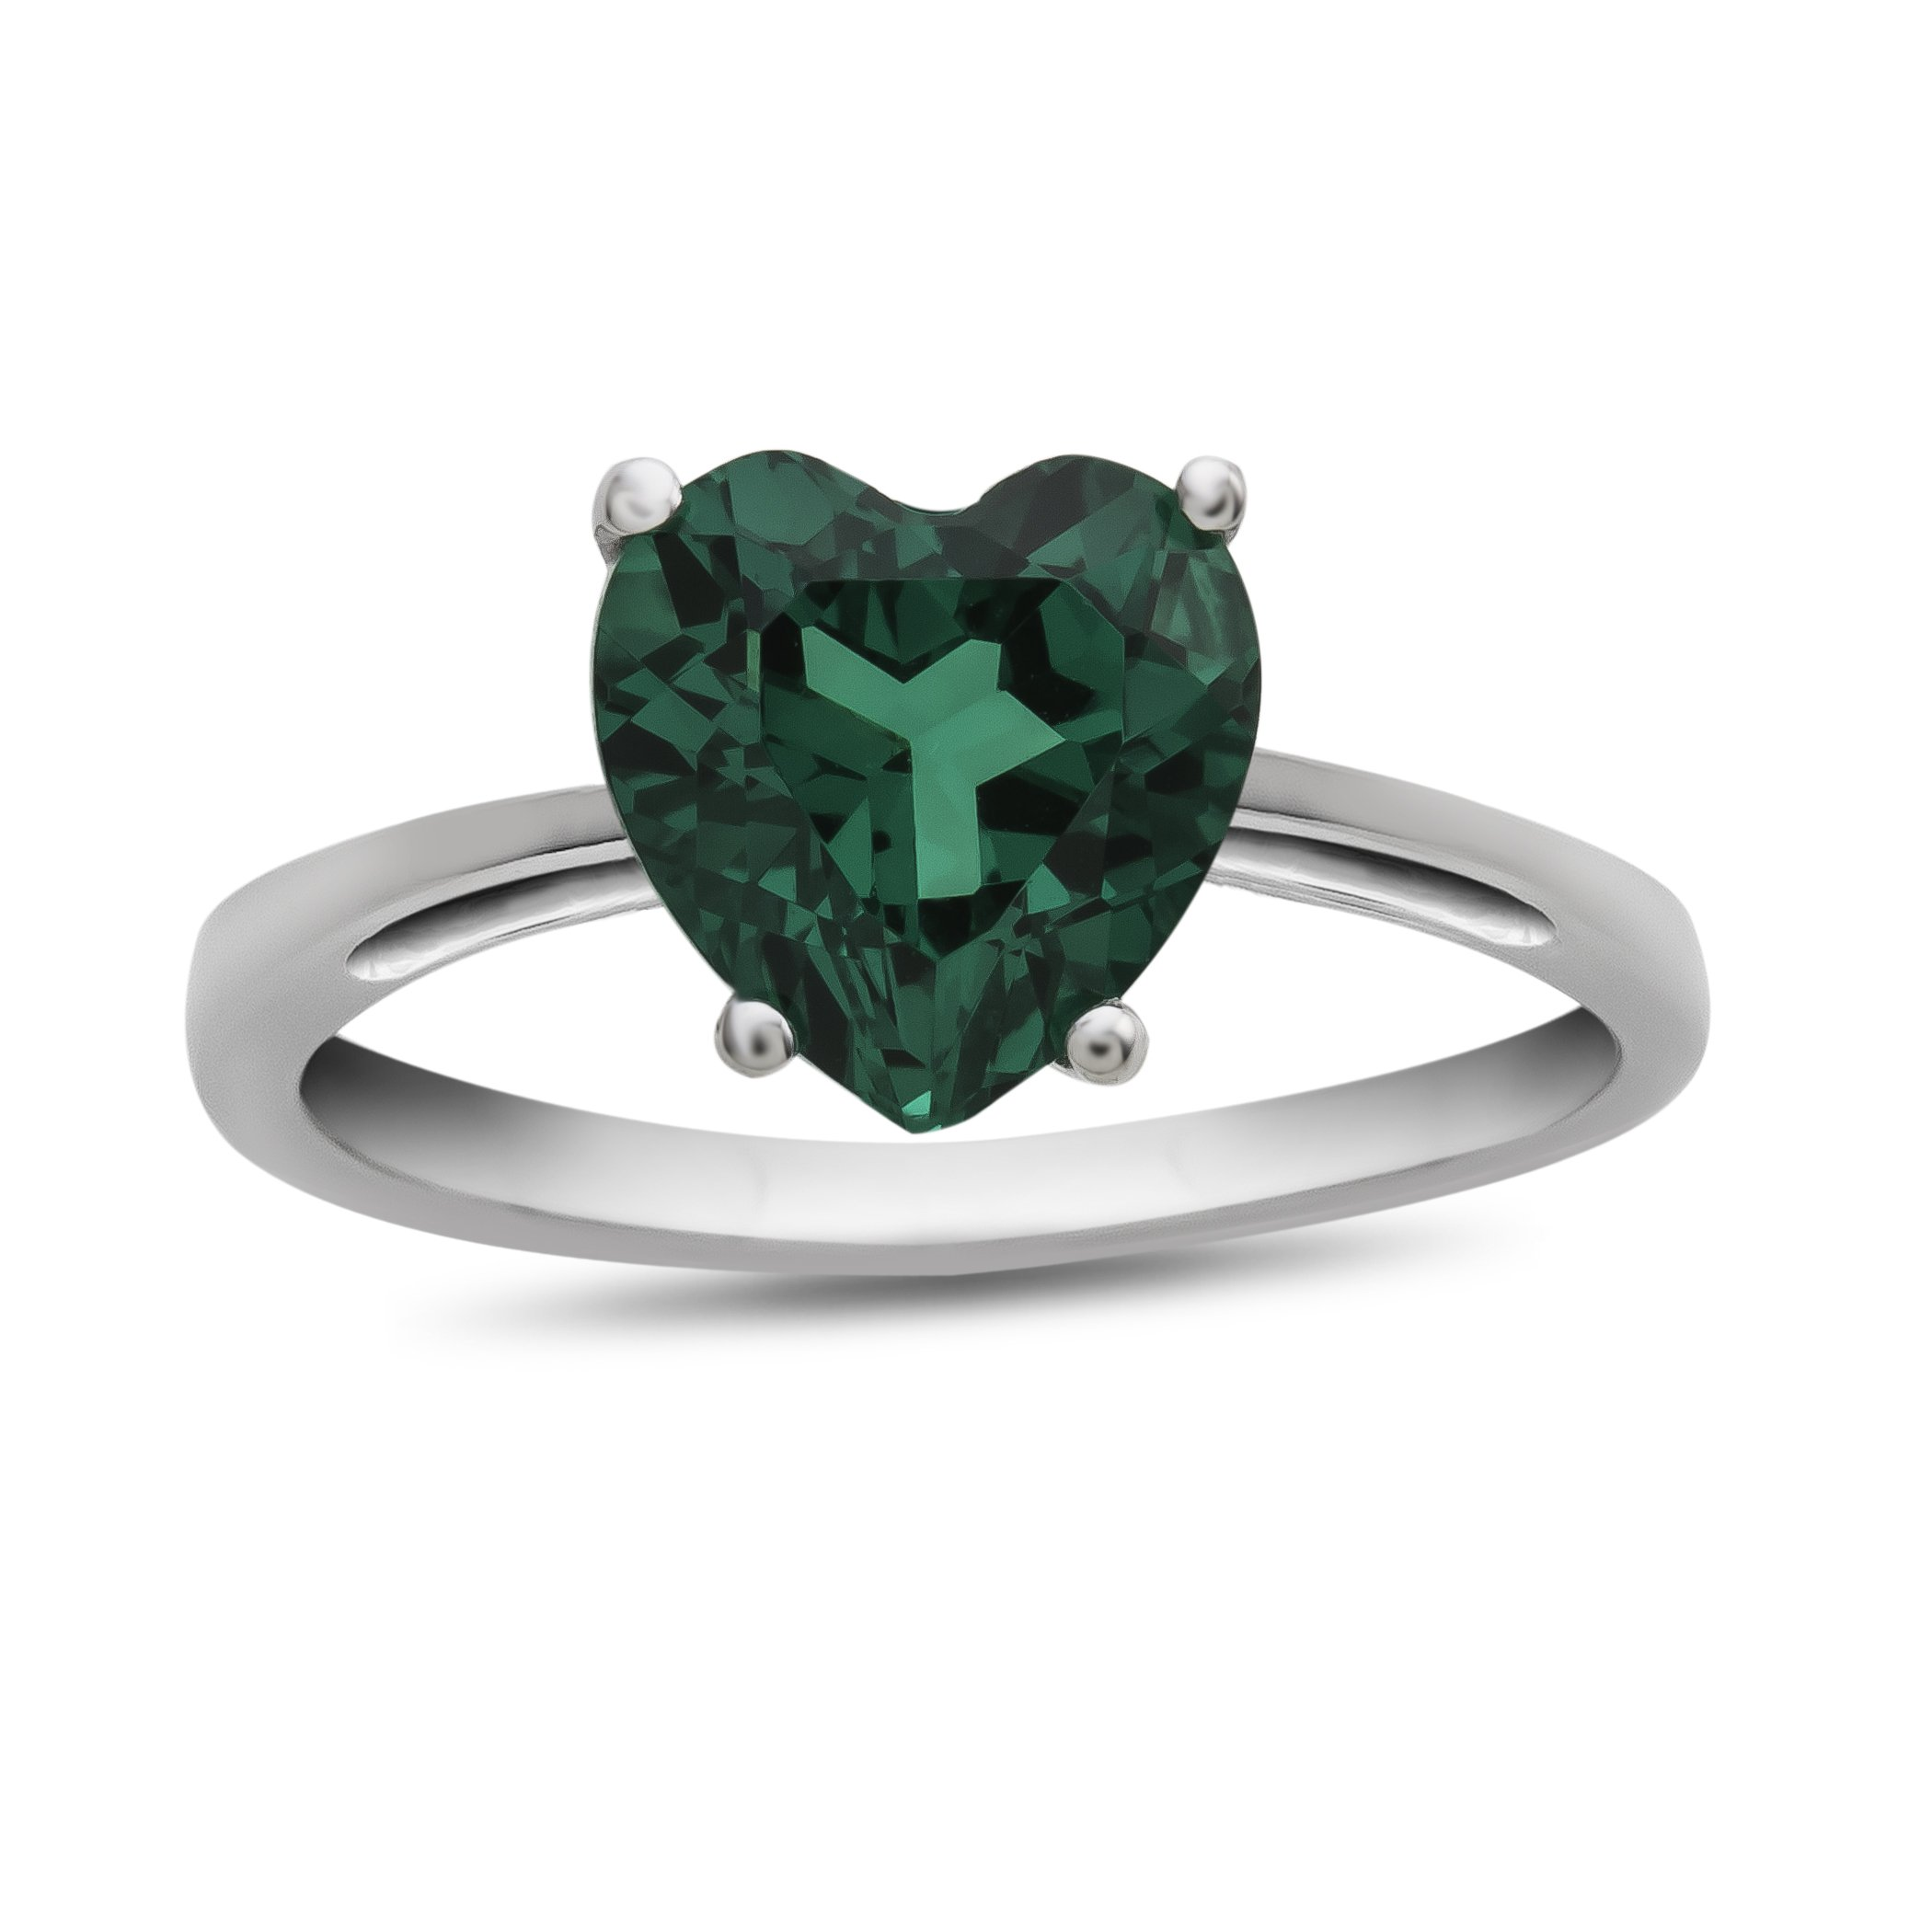 10k White Gold 7mm Heart Shaped Simulated Emerald Ring Size 6 by Finejewelers